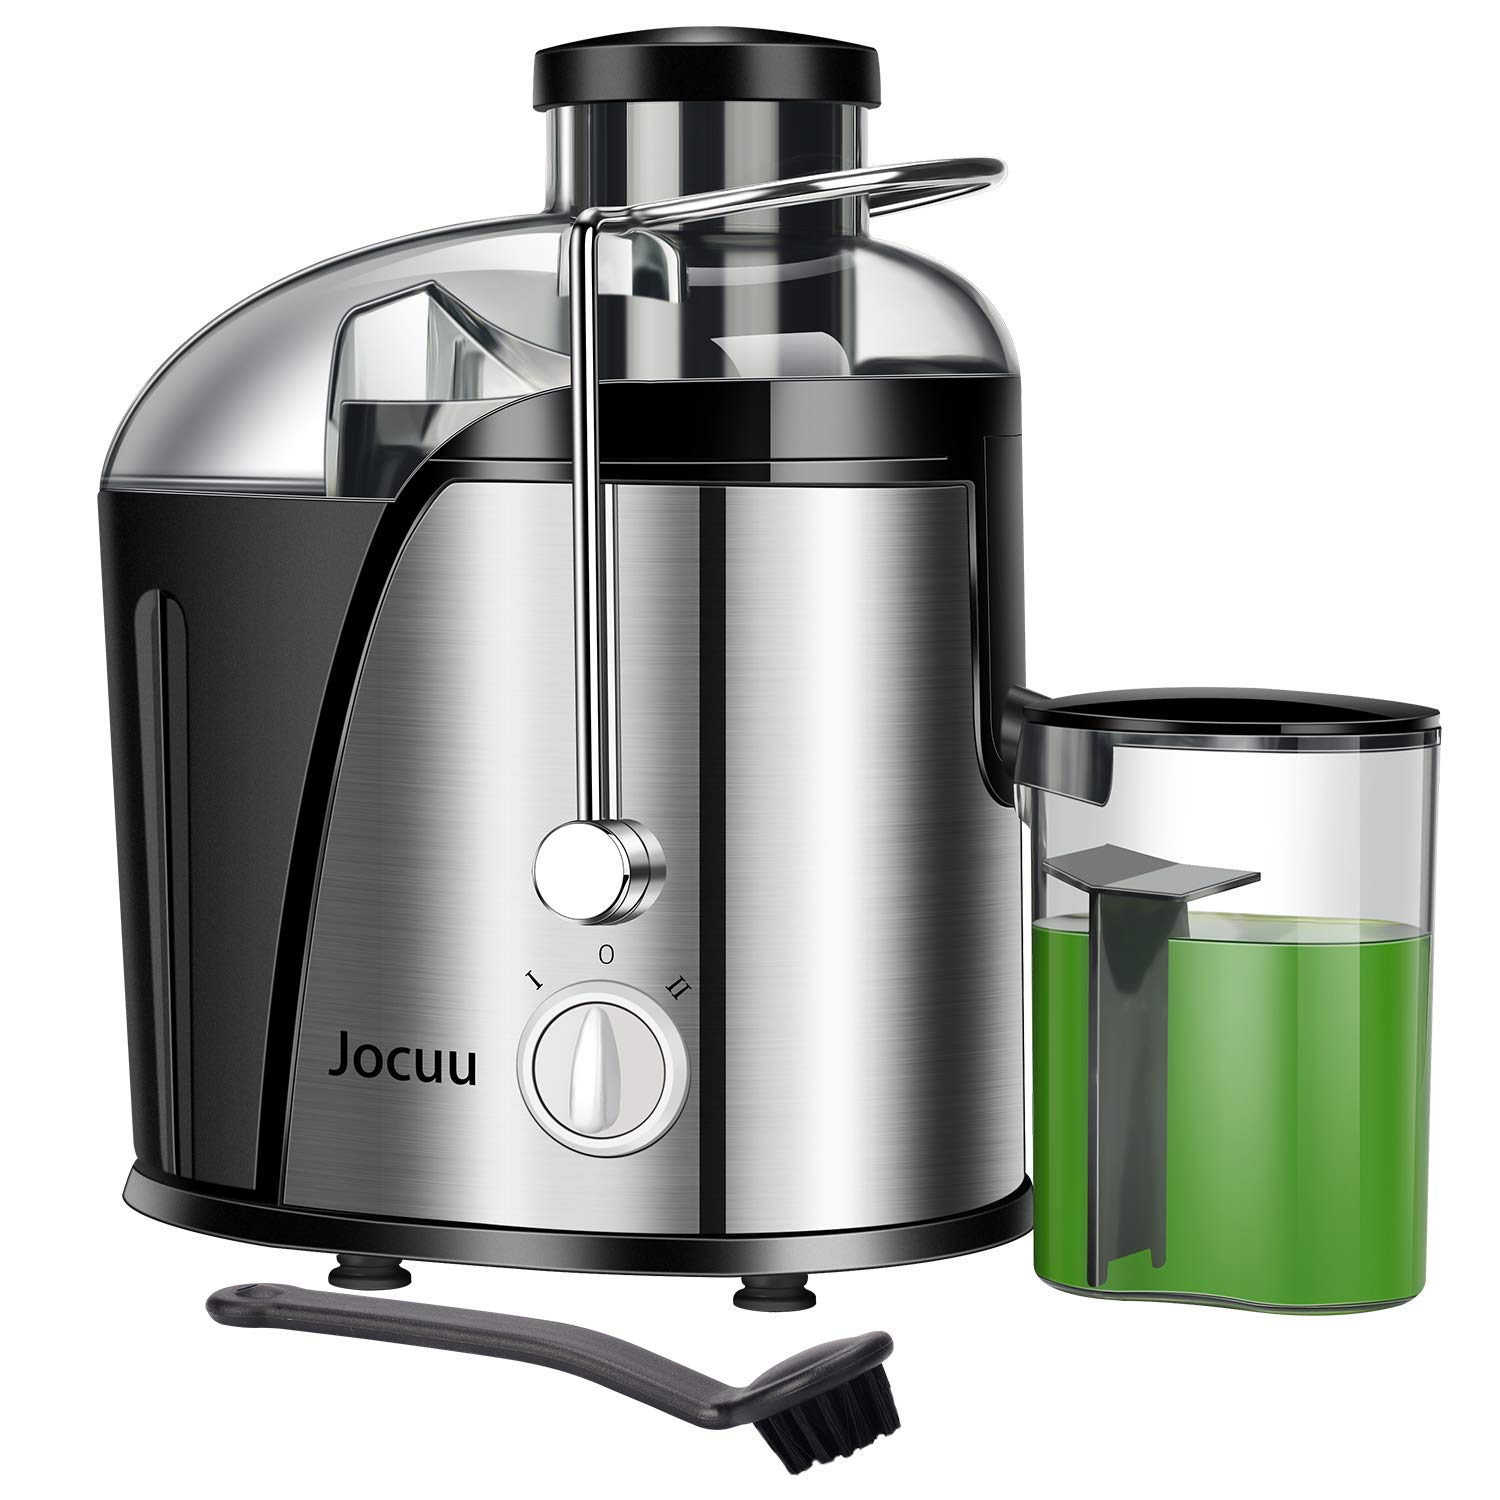 Jocuu Juicer Machine, Centrifugal Juicer Juice Extractor Wide Feed Chute Easy to clean, 2 Speed 600W Power, Food Grade 304 Stainless Steel BPA-Free Dishwasher Safe by Jocuu